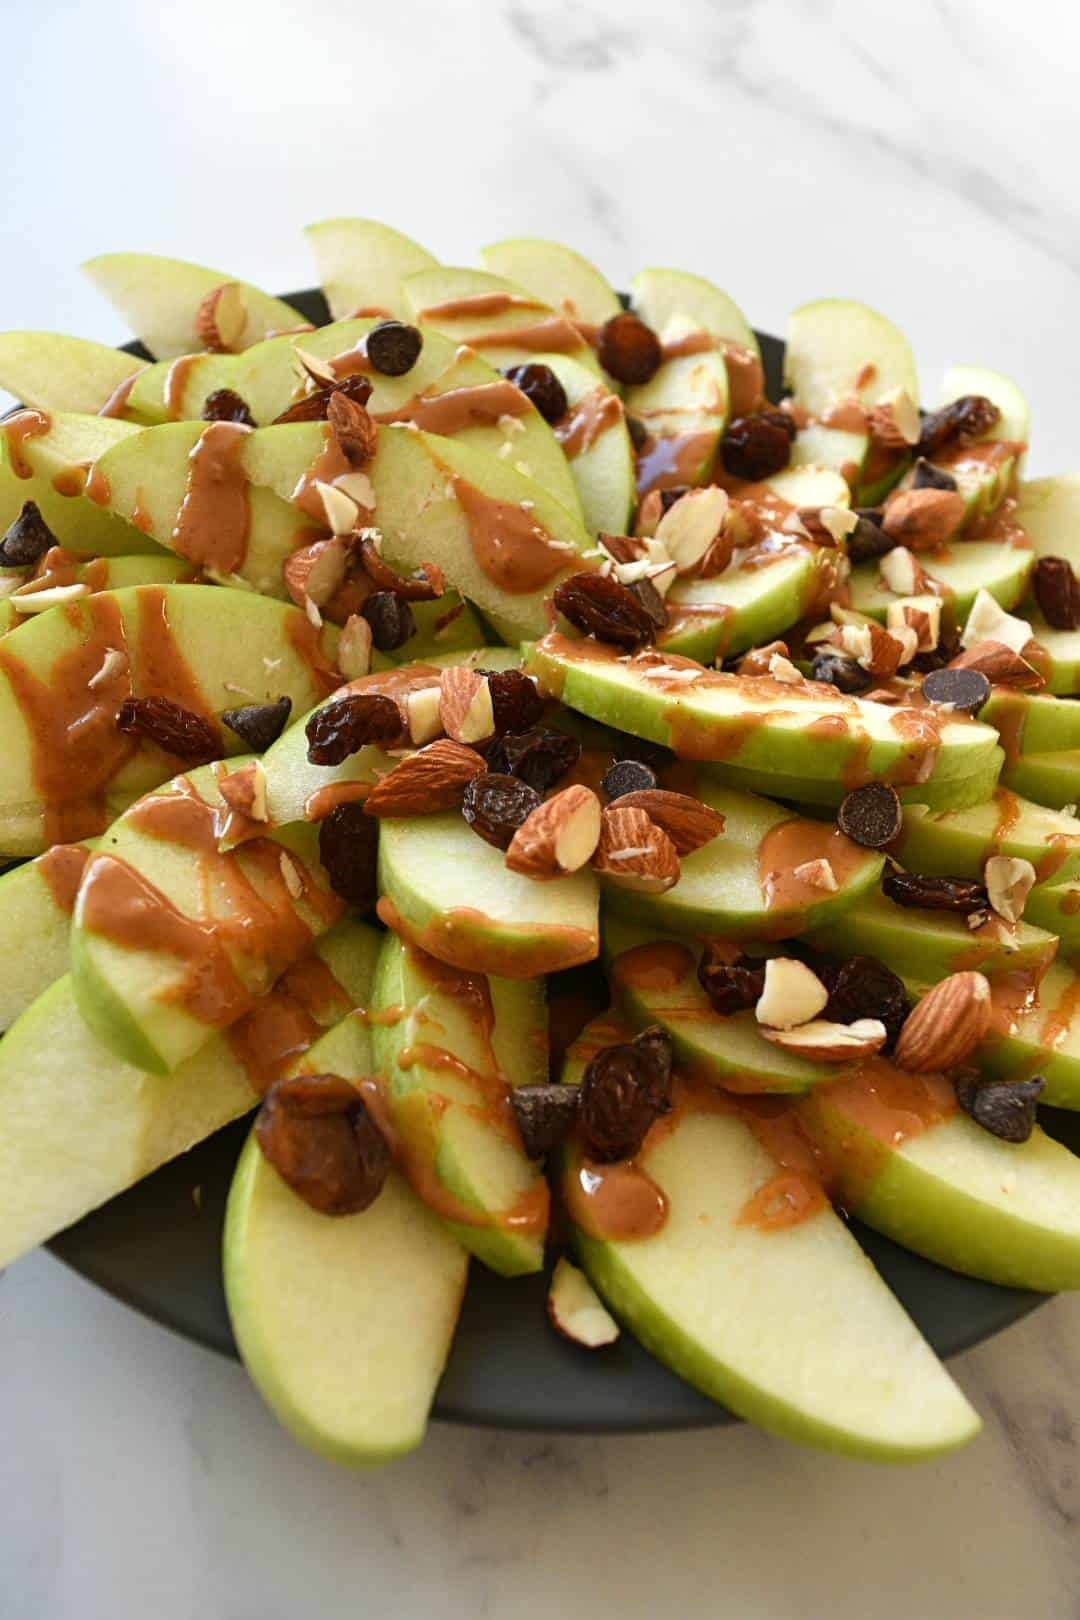 Peanut butter apple nachos topped with raisins, almonds and chocolate chips.